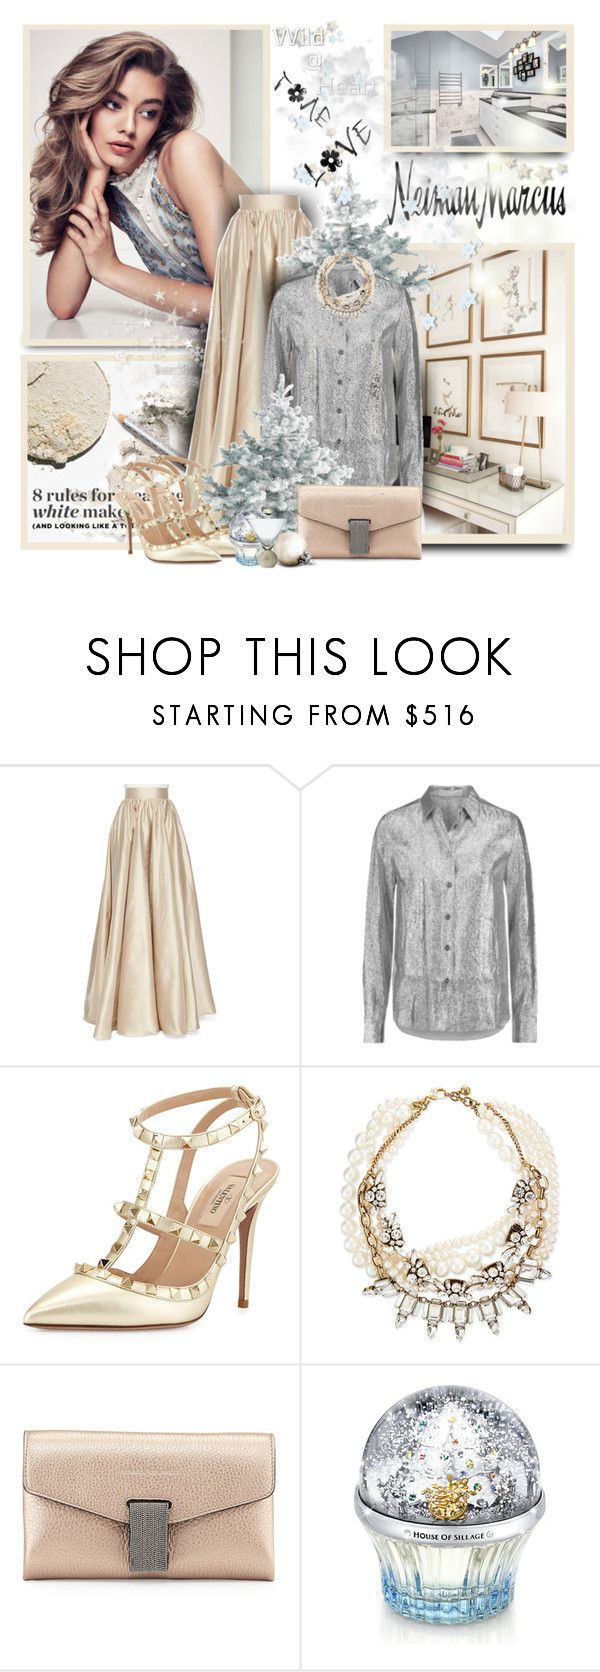 """""""The Holiday Wish List With Neiman Marcus"""" by sneky ❤ liked on Polyvore featuring Jenny Packham, Neiman Marcus, STELLA McCARTNEY, Valentino, Lulu Frost, Brunello Cucinelli, House of Sillage and NMgifts"""